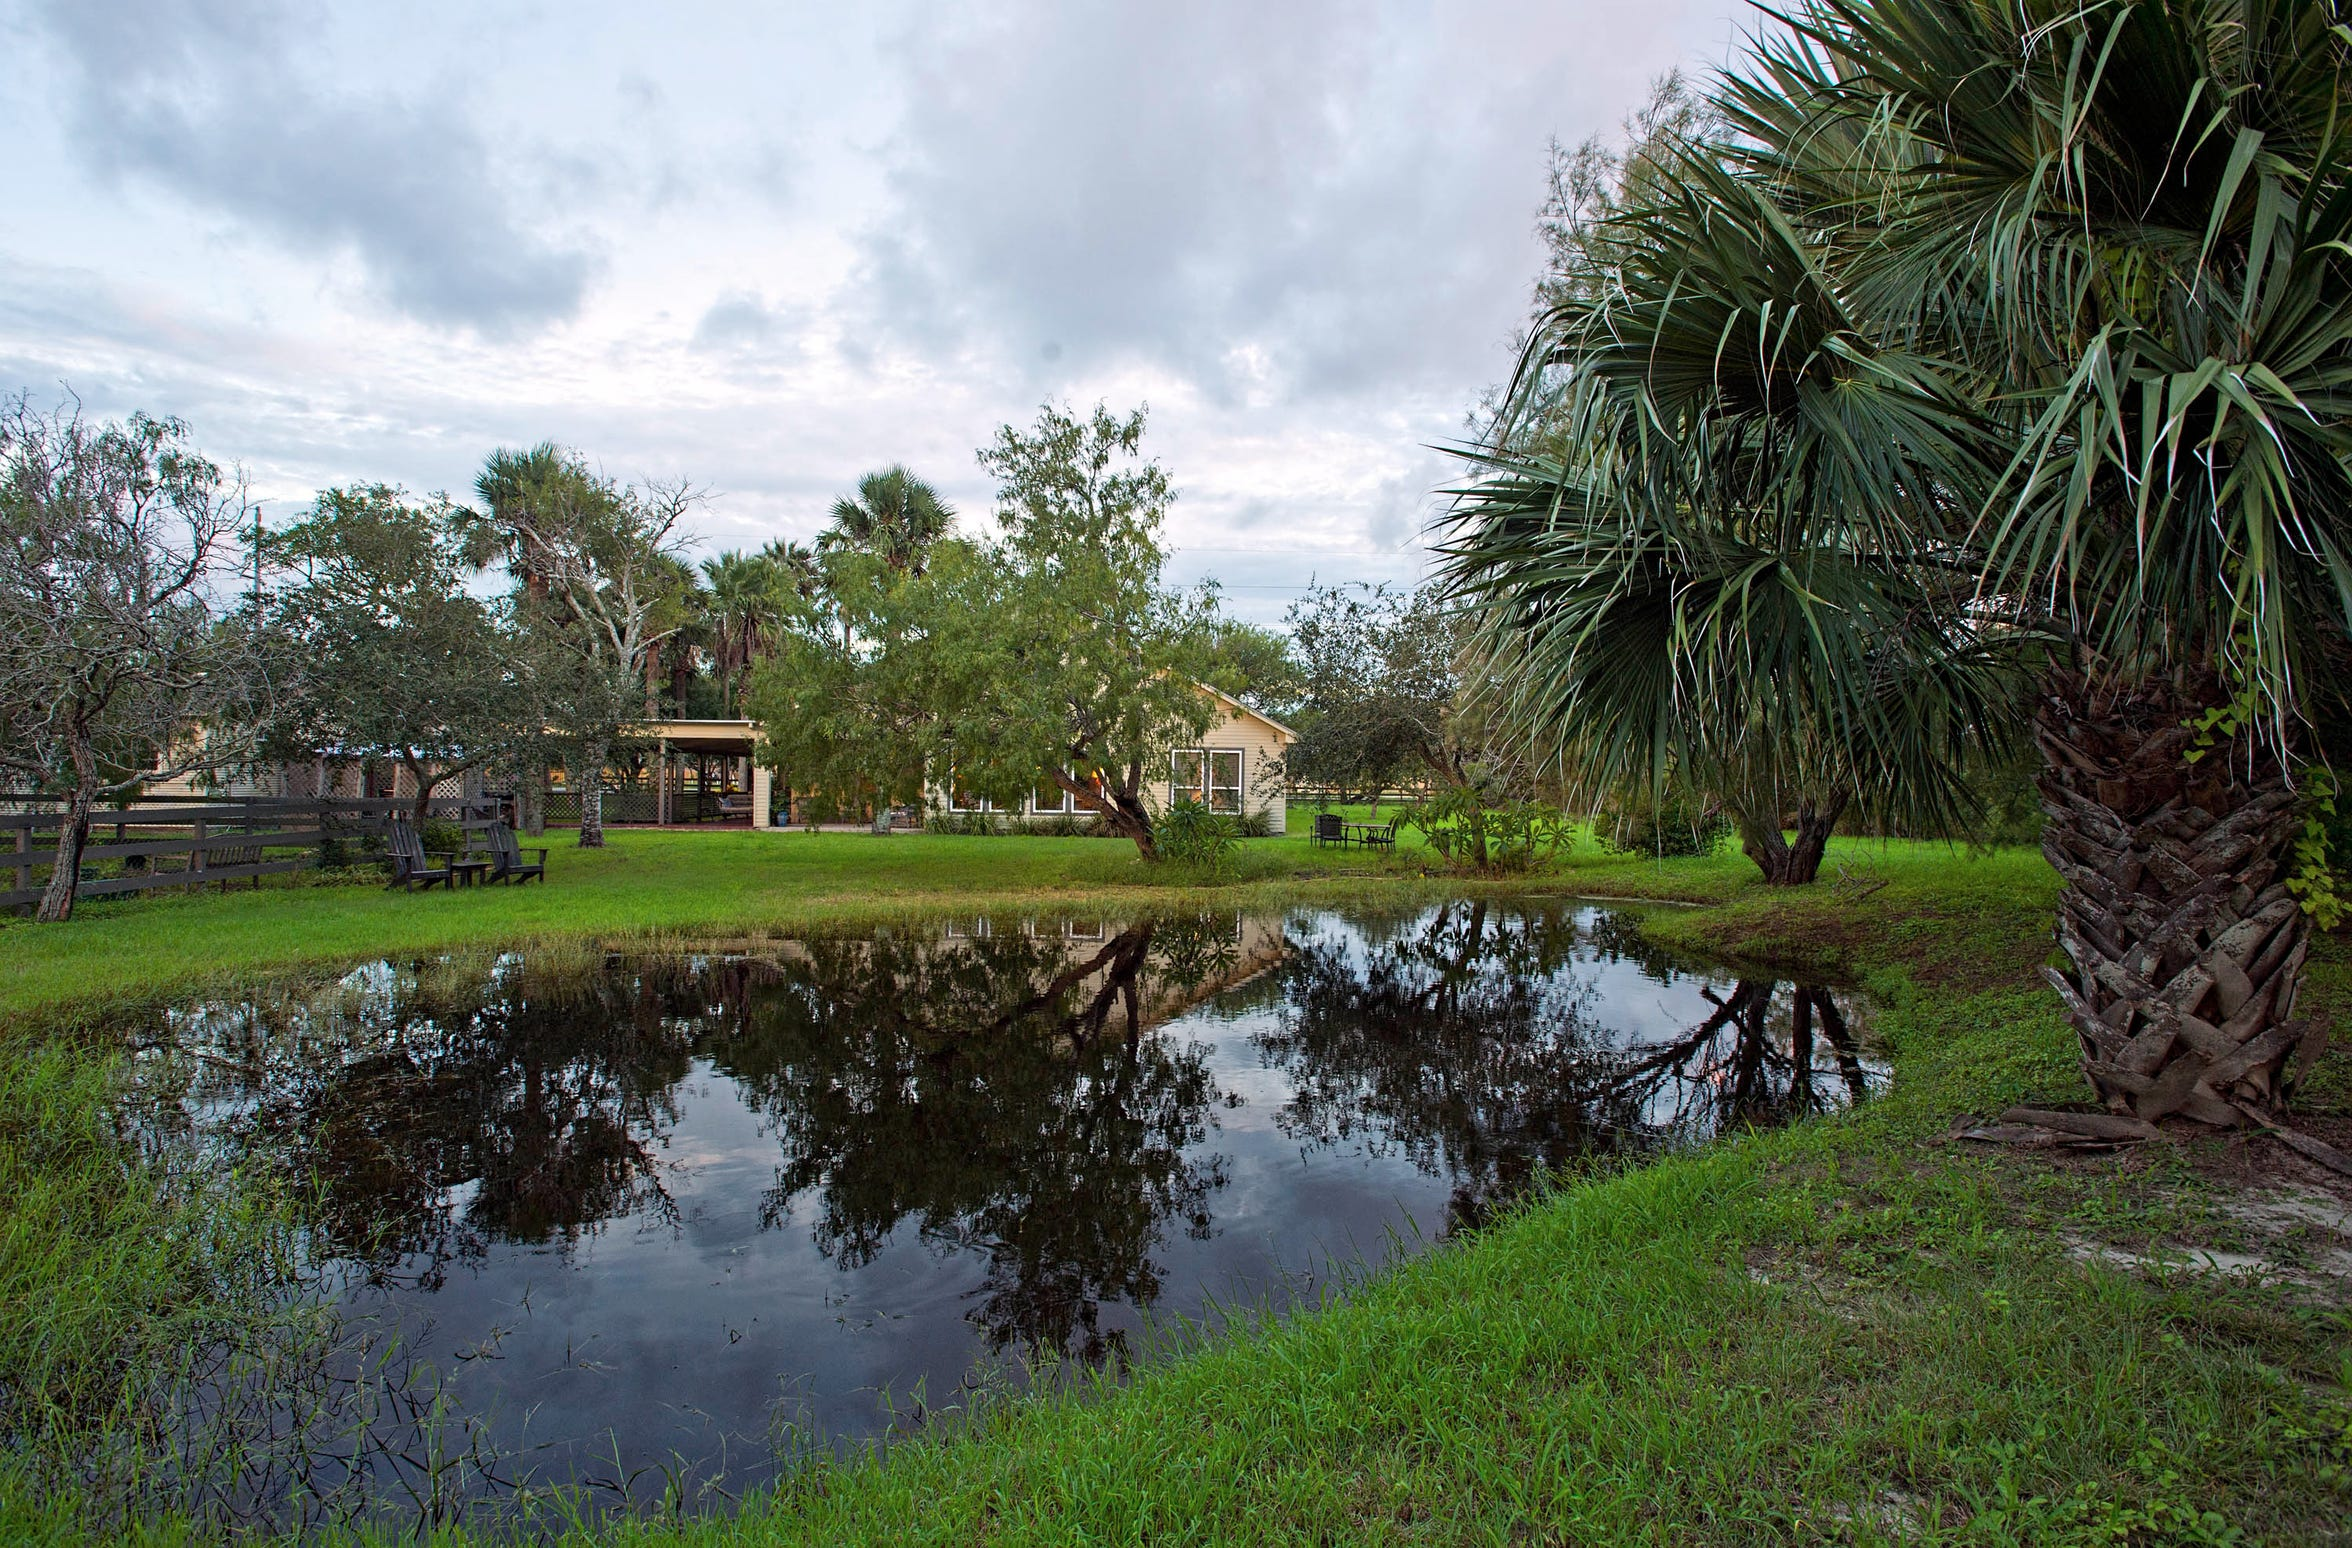 The home is reflected in the pond which is surrounded by trees and is the spot for frequent wildlife sightings.